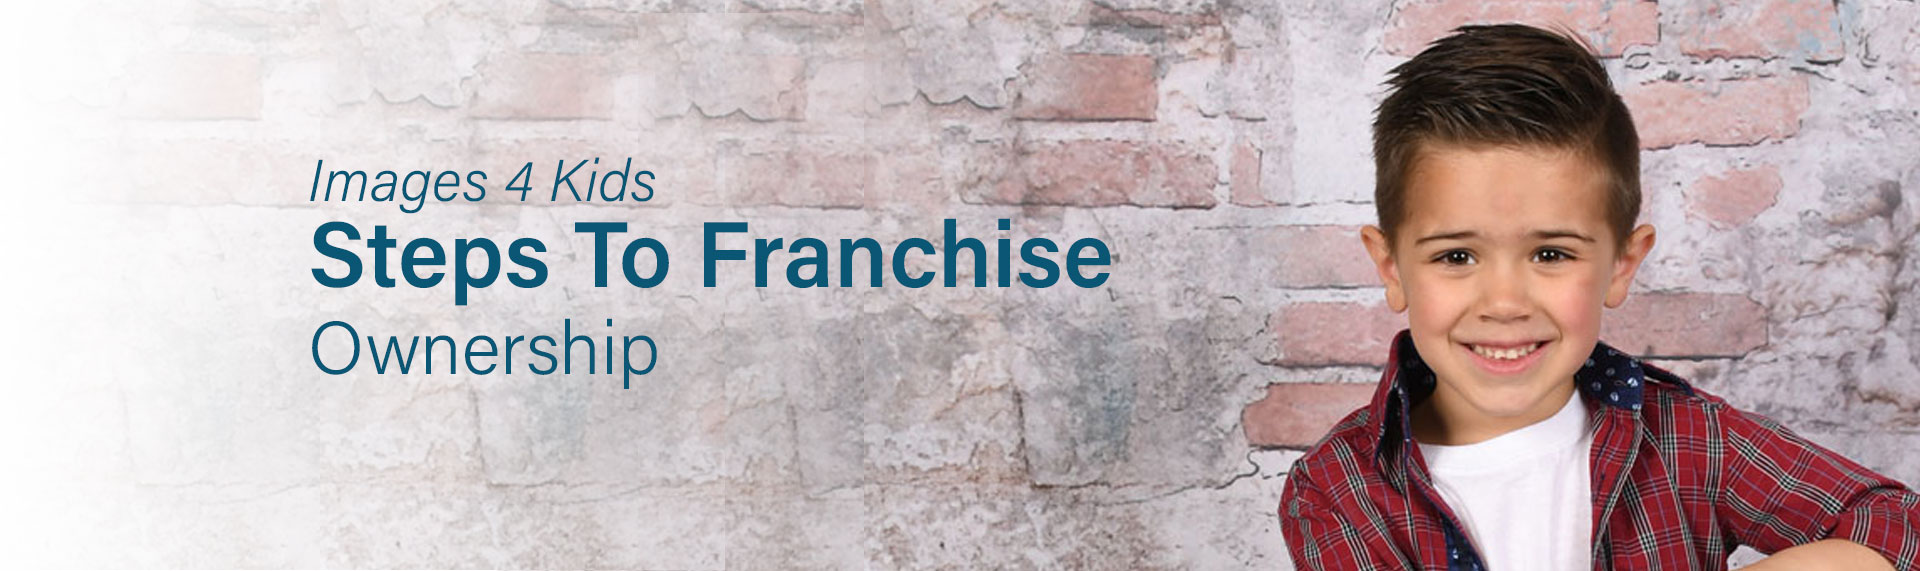 Images 4 Kids - Steps to Franchise Ownership